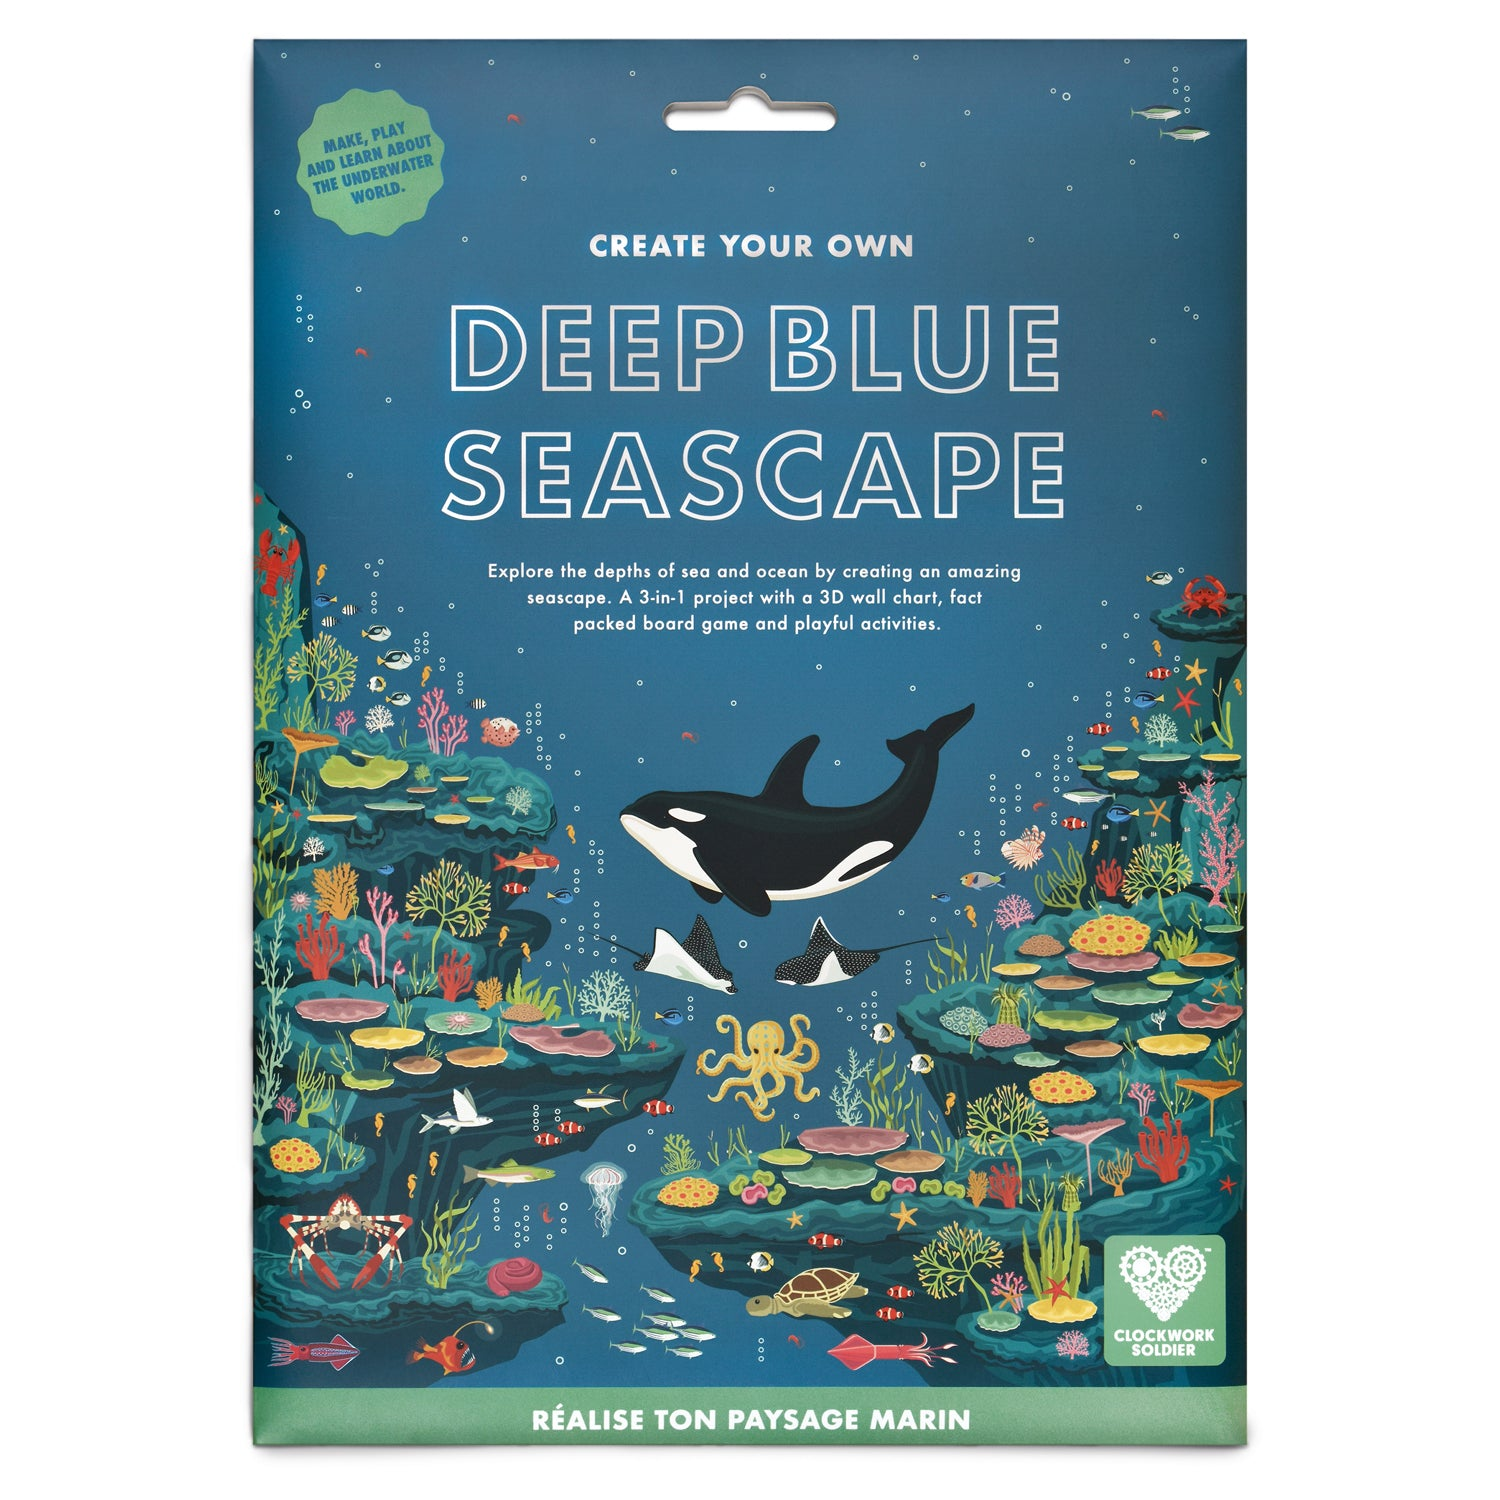 Explore the depths of the ocean by creating an amazing seascape. A 3-in-1 project with a 3D wall chart, fact packed board game and playful activities.  Take a trip down through an underwater world. Journey deep to the bottom of the ocean and discover the fascinating creatures and colourful plants that live in the deep - from the tiny shrimp to big blue whale!  On one side, a beautifully illustrated seascape showing some of the amazing creatures that live in the ocean. On the other side is an amazing, fact p